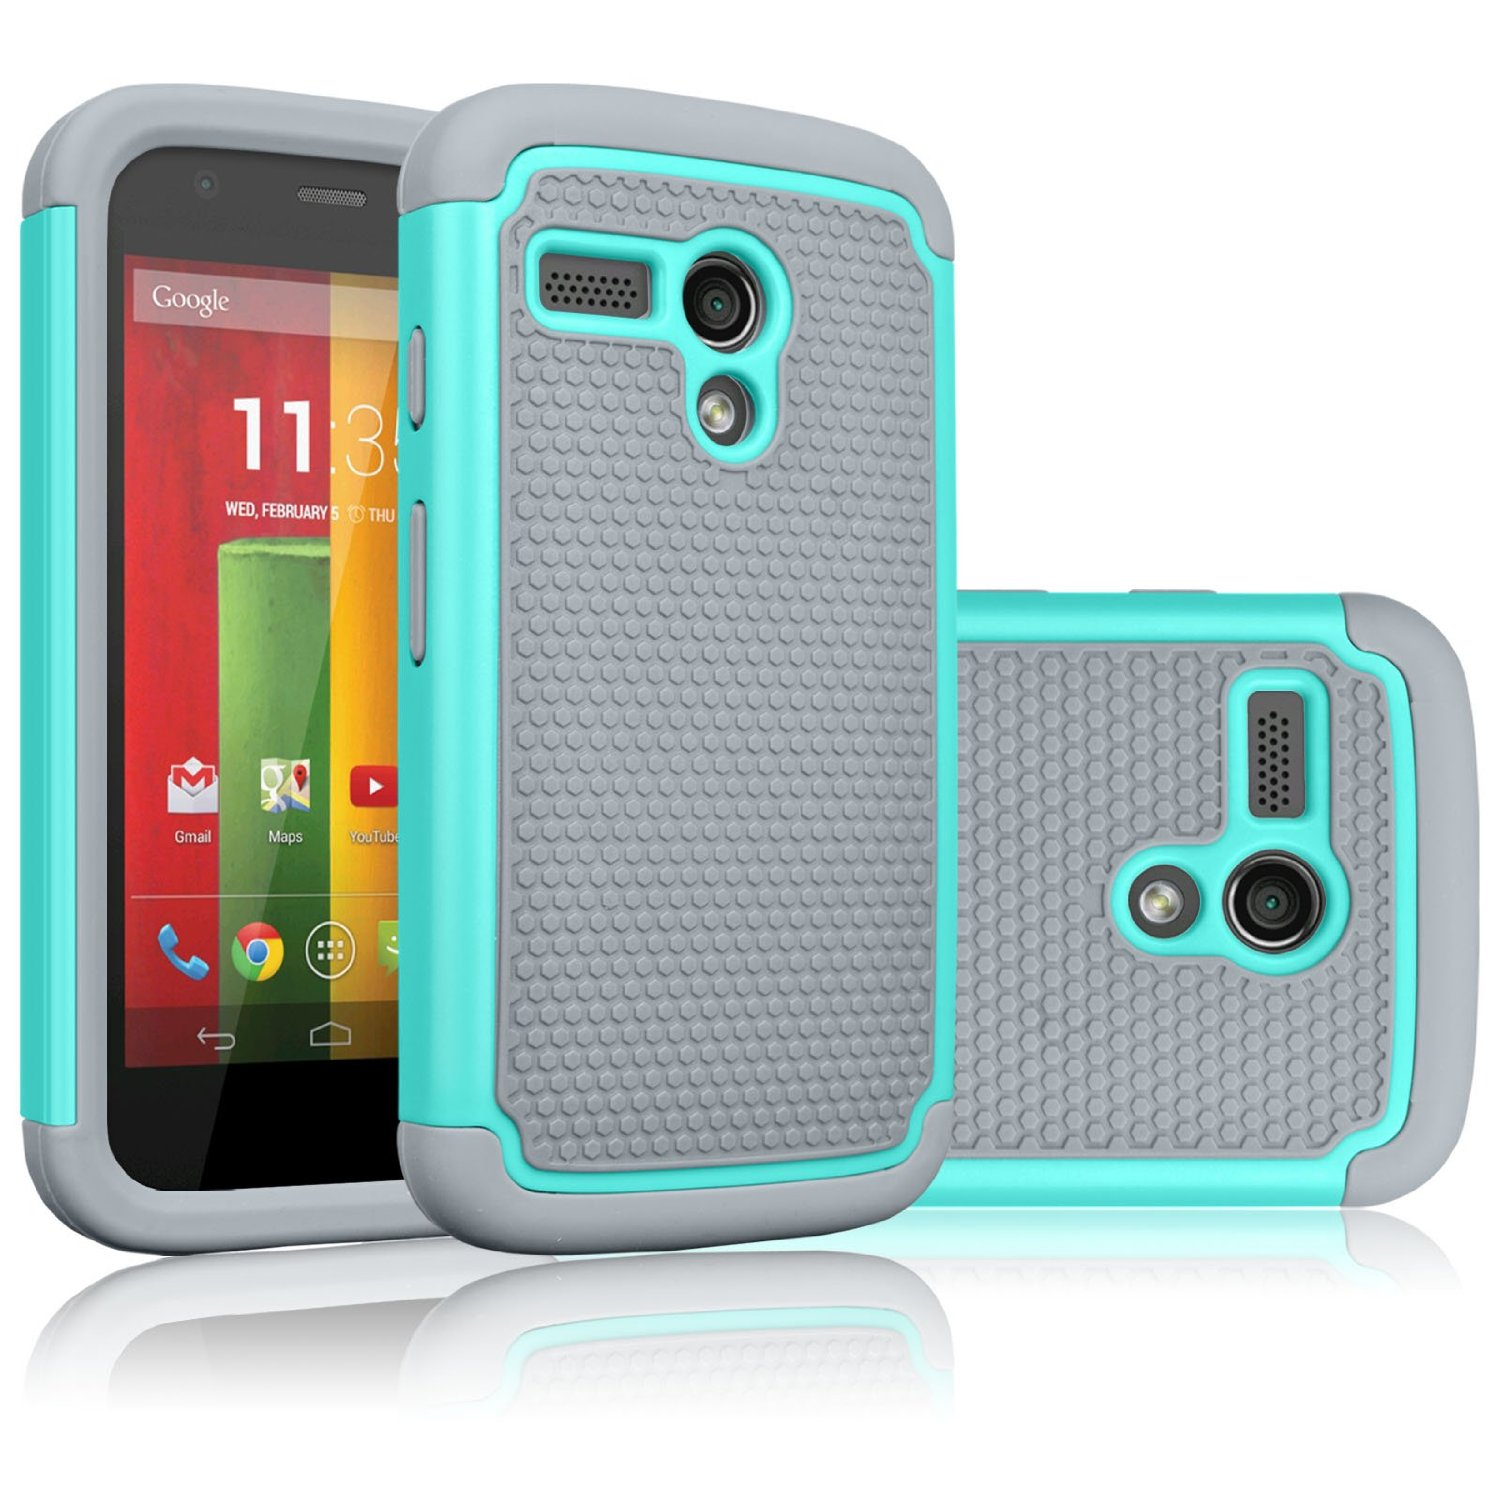 Motorola Moto G Case, Moto G 1st Gen Case, Tekcoo(TM) [Tmajor Series] Shock Absorbing Hybrid Rubber Plastic Impact Defender Rugged Slim Hard Case Cover For Moto G 3G / 4G LTE (Turquoise / Grey)